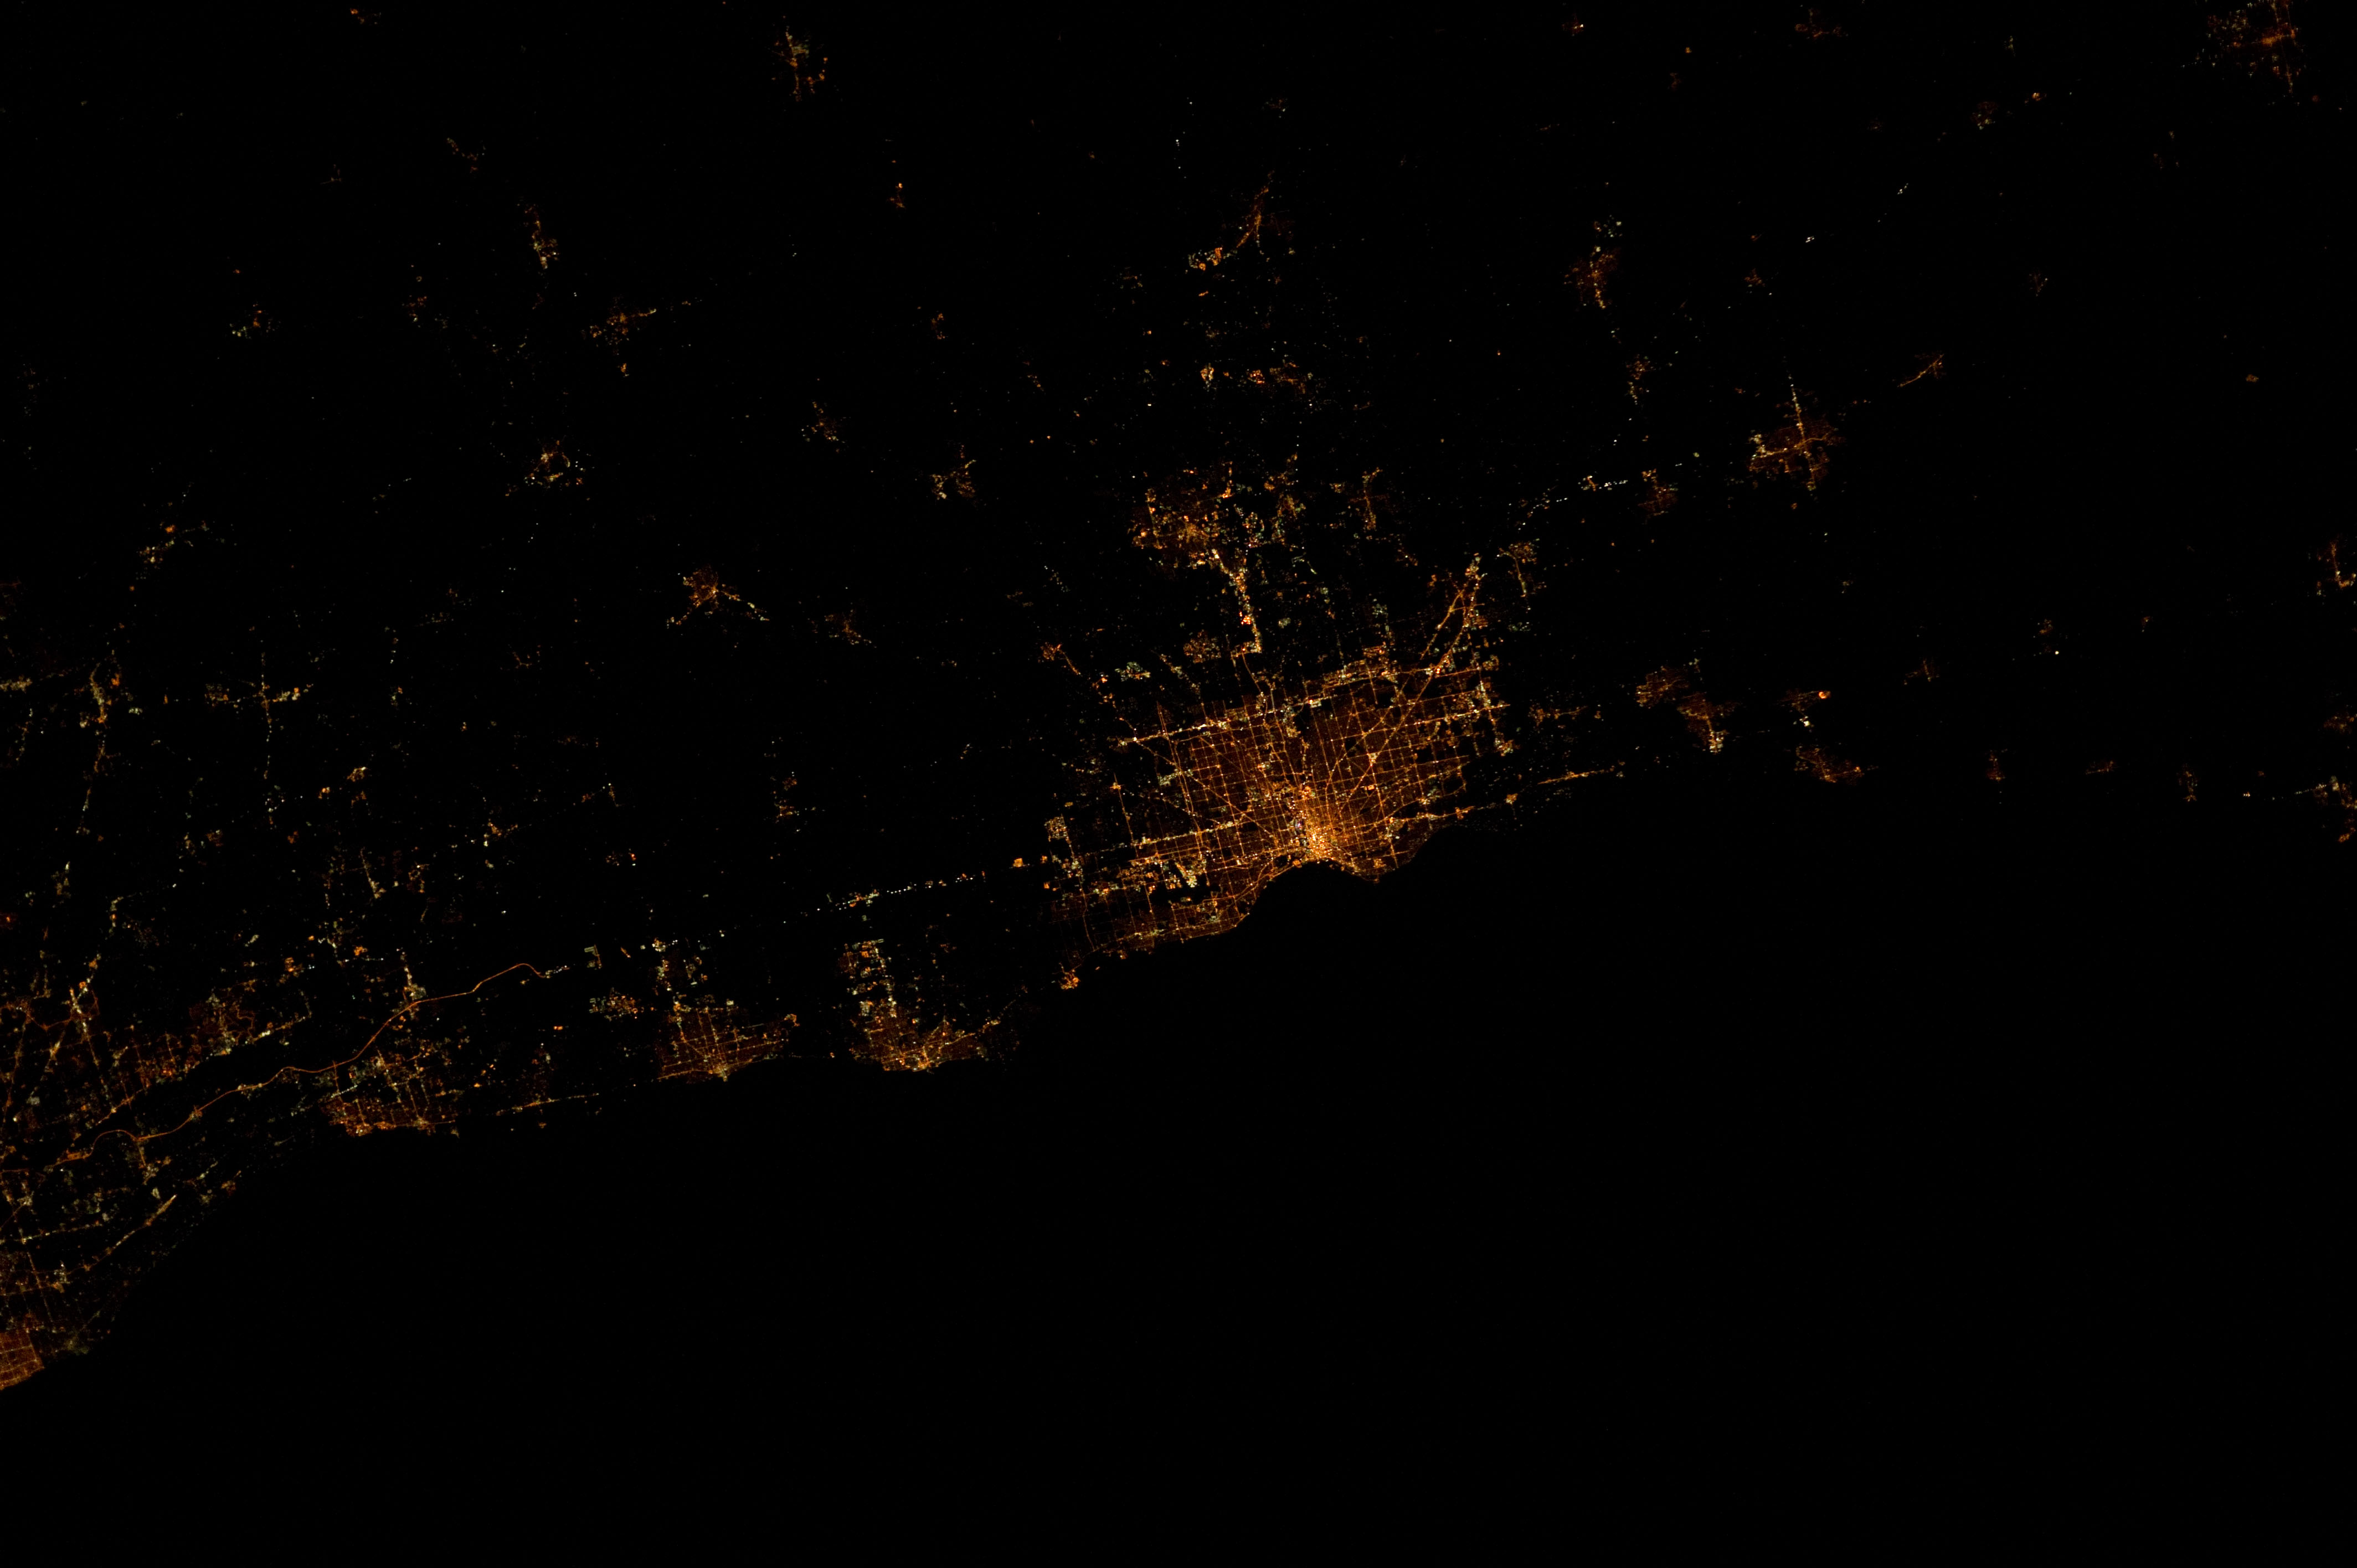 Kenosha, 11:23:40 PM CDT in 2012 during Expedition 30 at the International Space Station